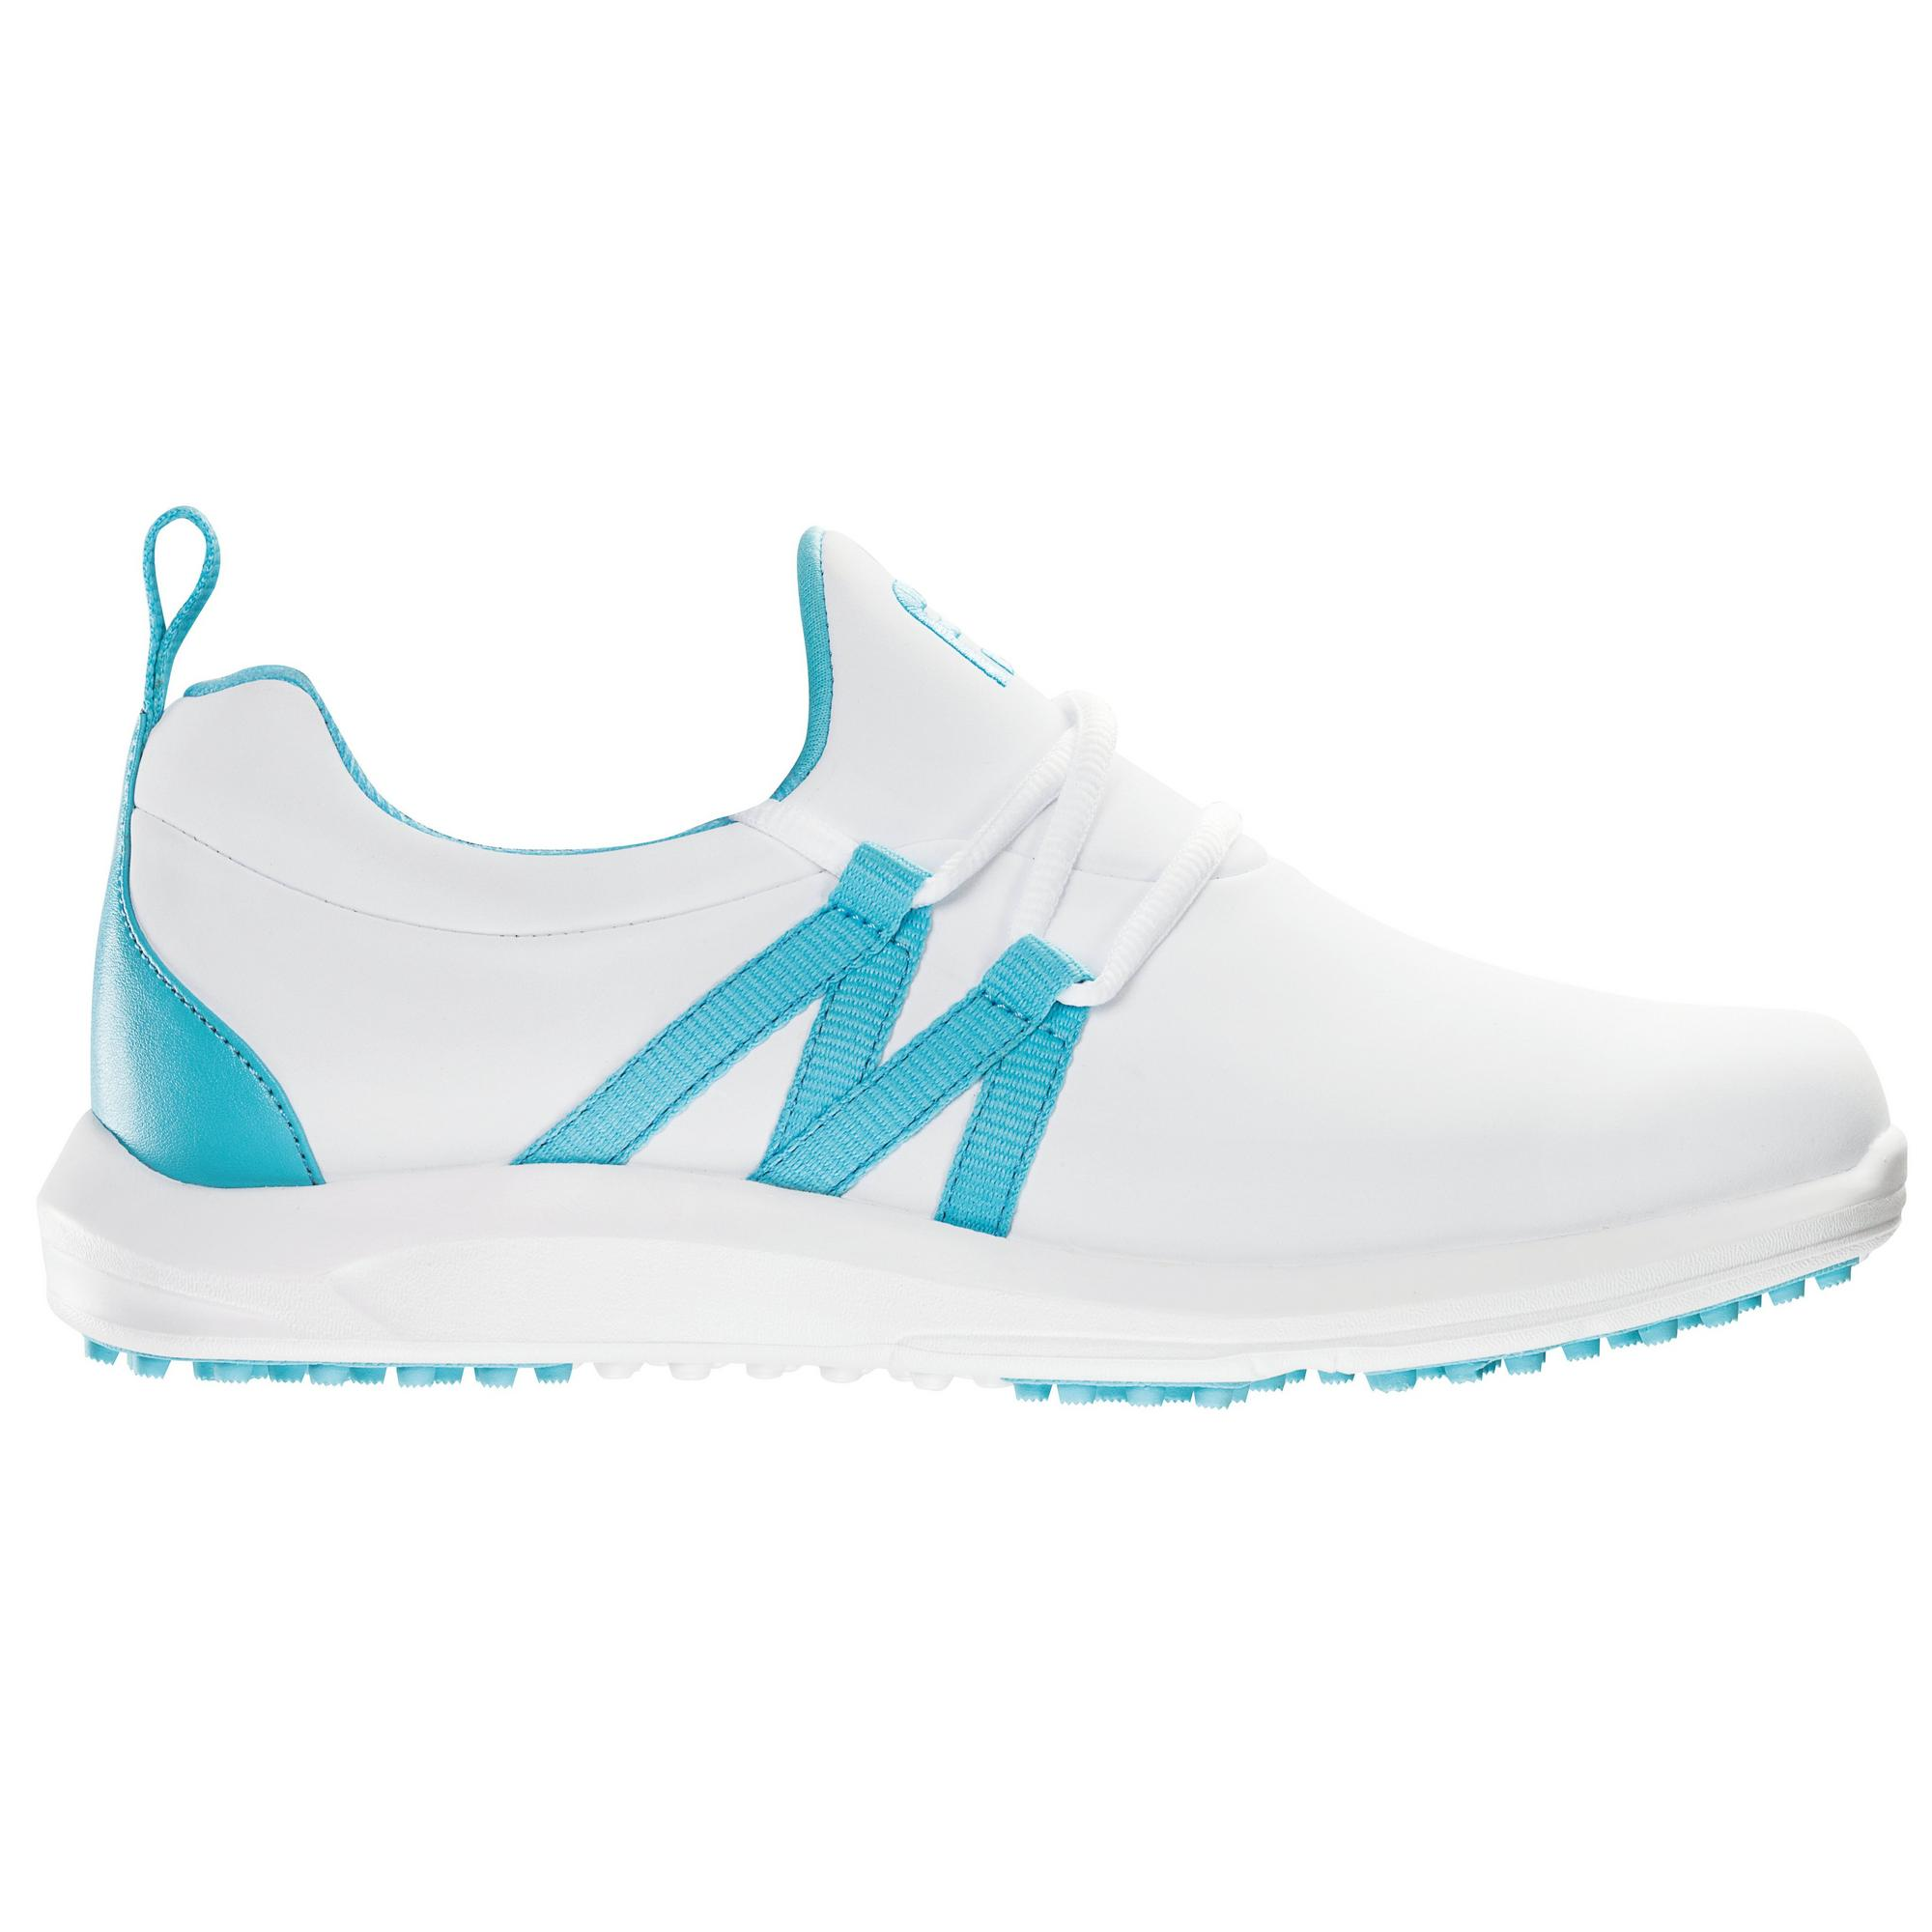 Women's FJ Leisure Slip On Spikeless Shoe - WHITE/LIGHT BLUE